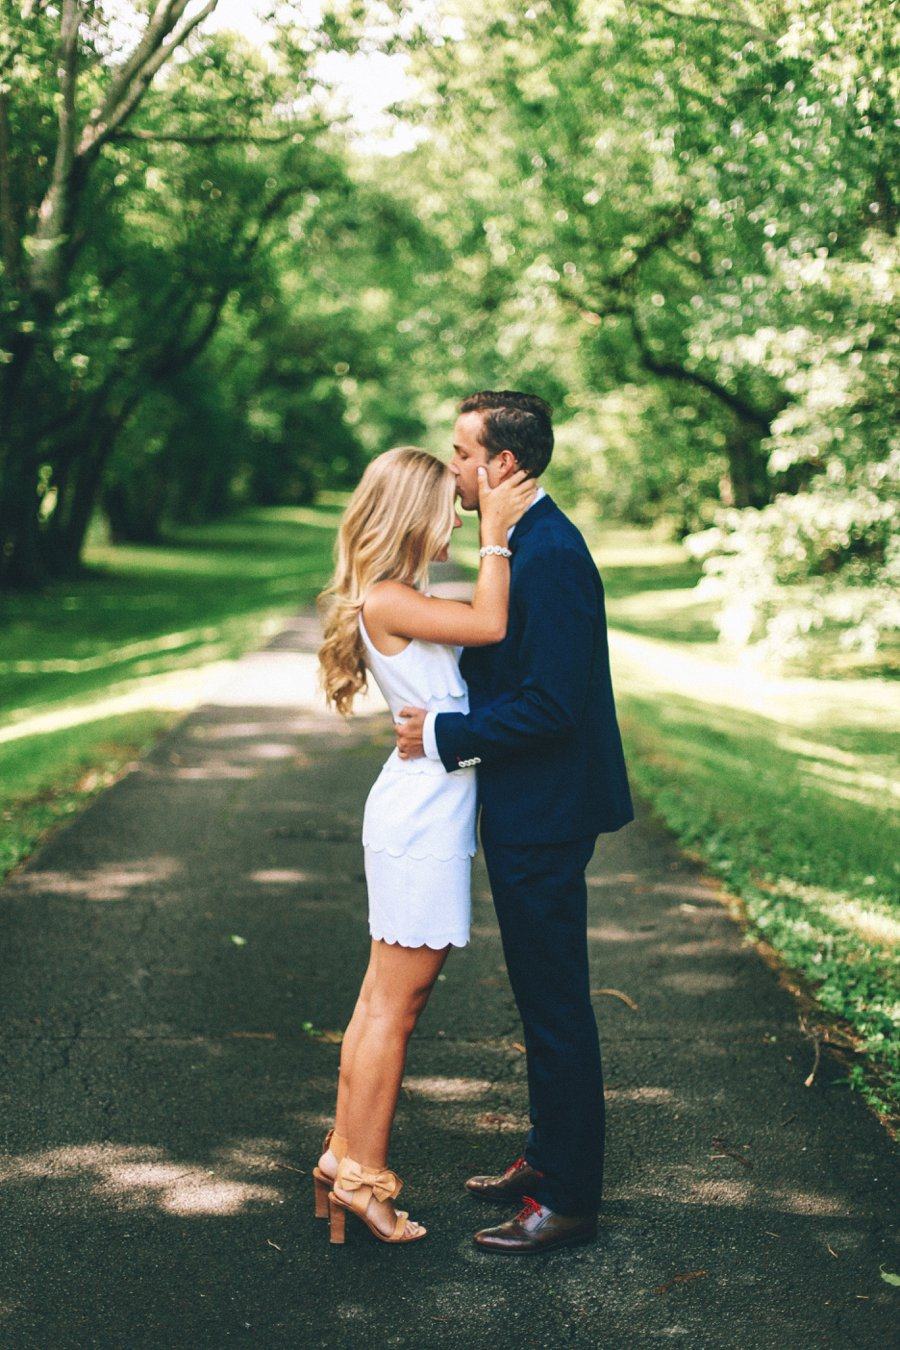 engagement-pose-kiss http://itgirlweddings.com/how-one-couple-nailed-their-engagement-session/